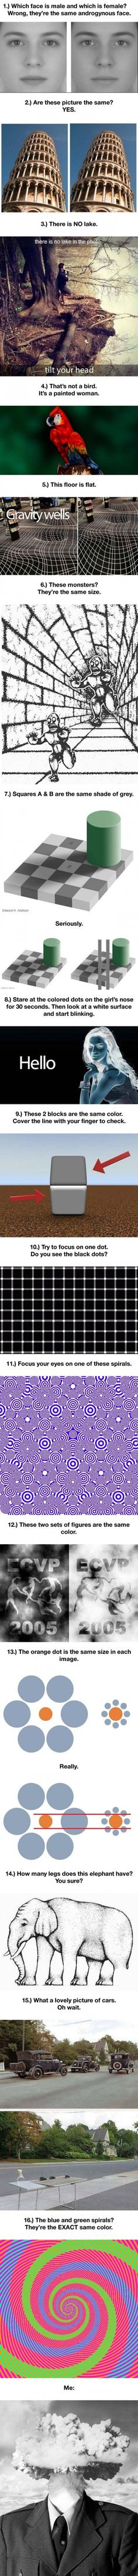 Illusions Out Our Other Funny Optical Illusion Optical - Fascinating optical illusion disguises 12 black dots right in front of you